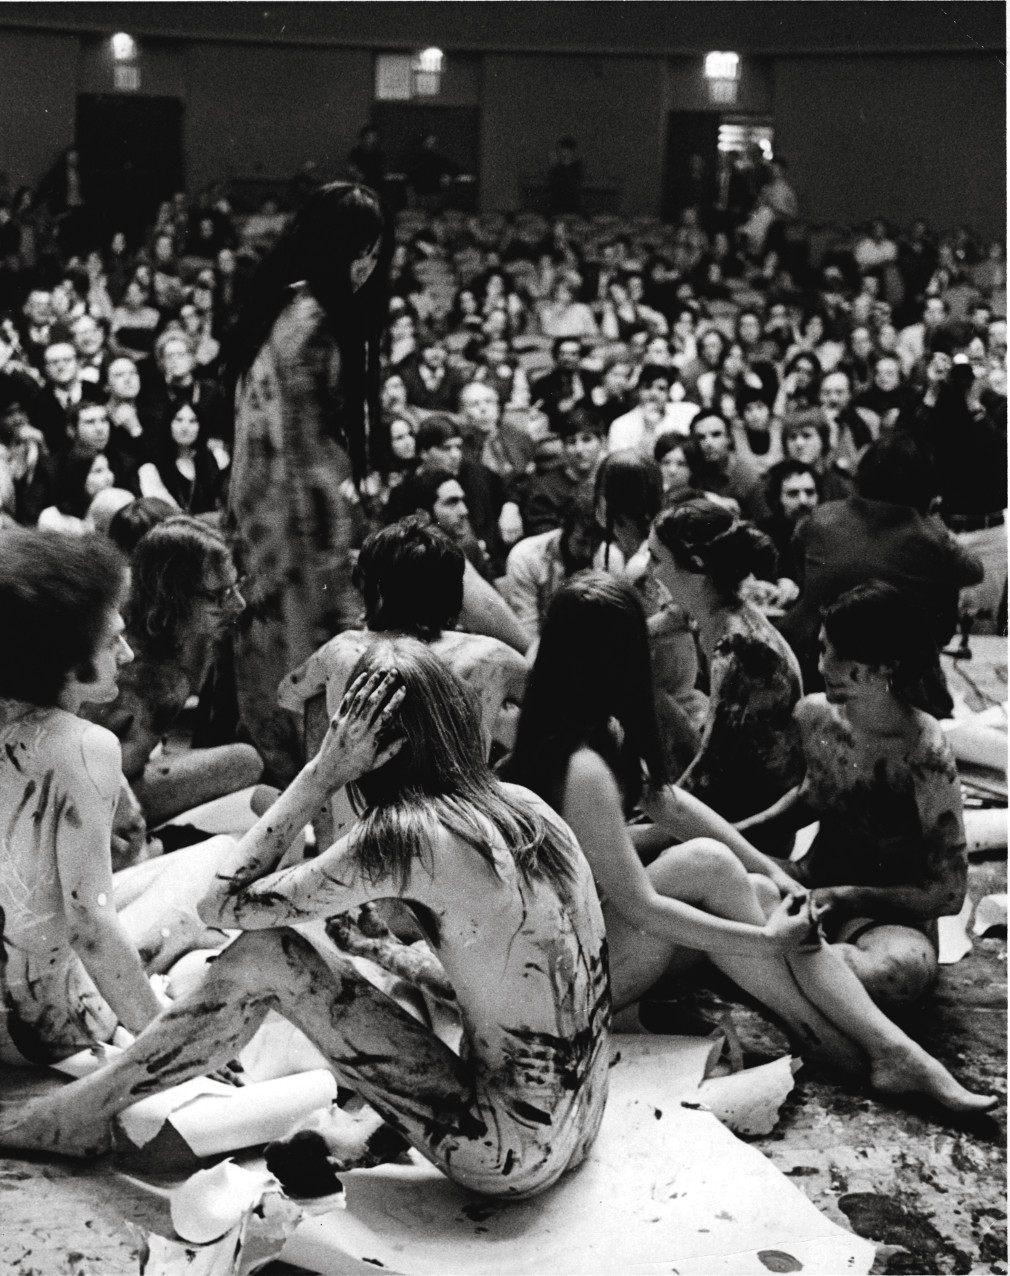 Yayoi Kusama, Happening, 1970, performance, New School For Social Research, New York. Artwork © Yayoi Kusama